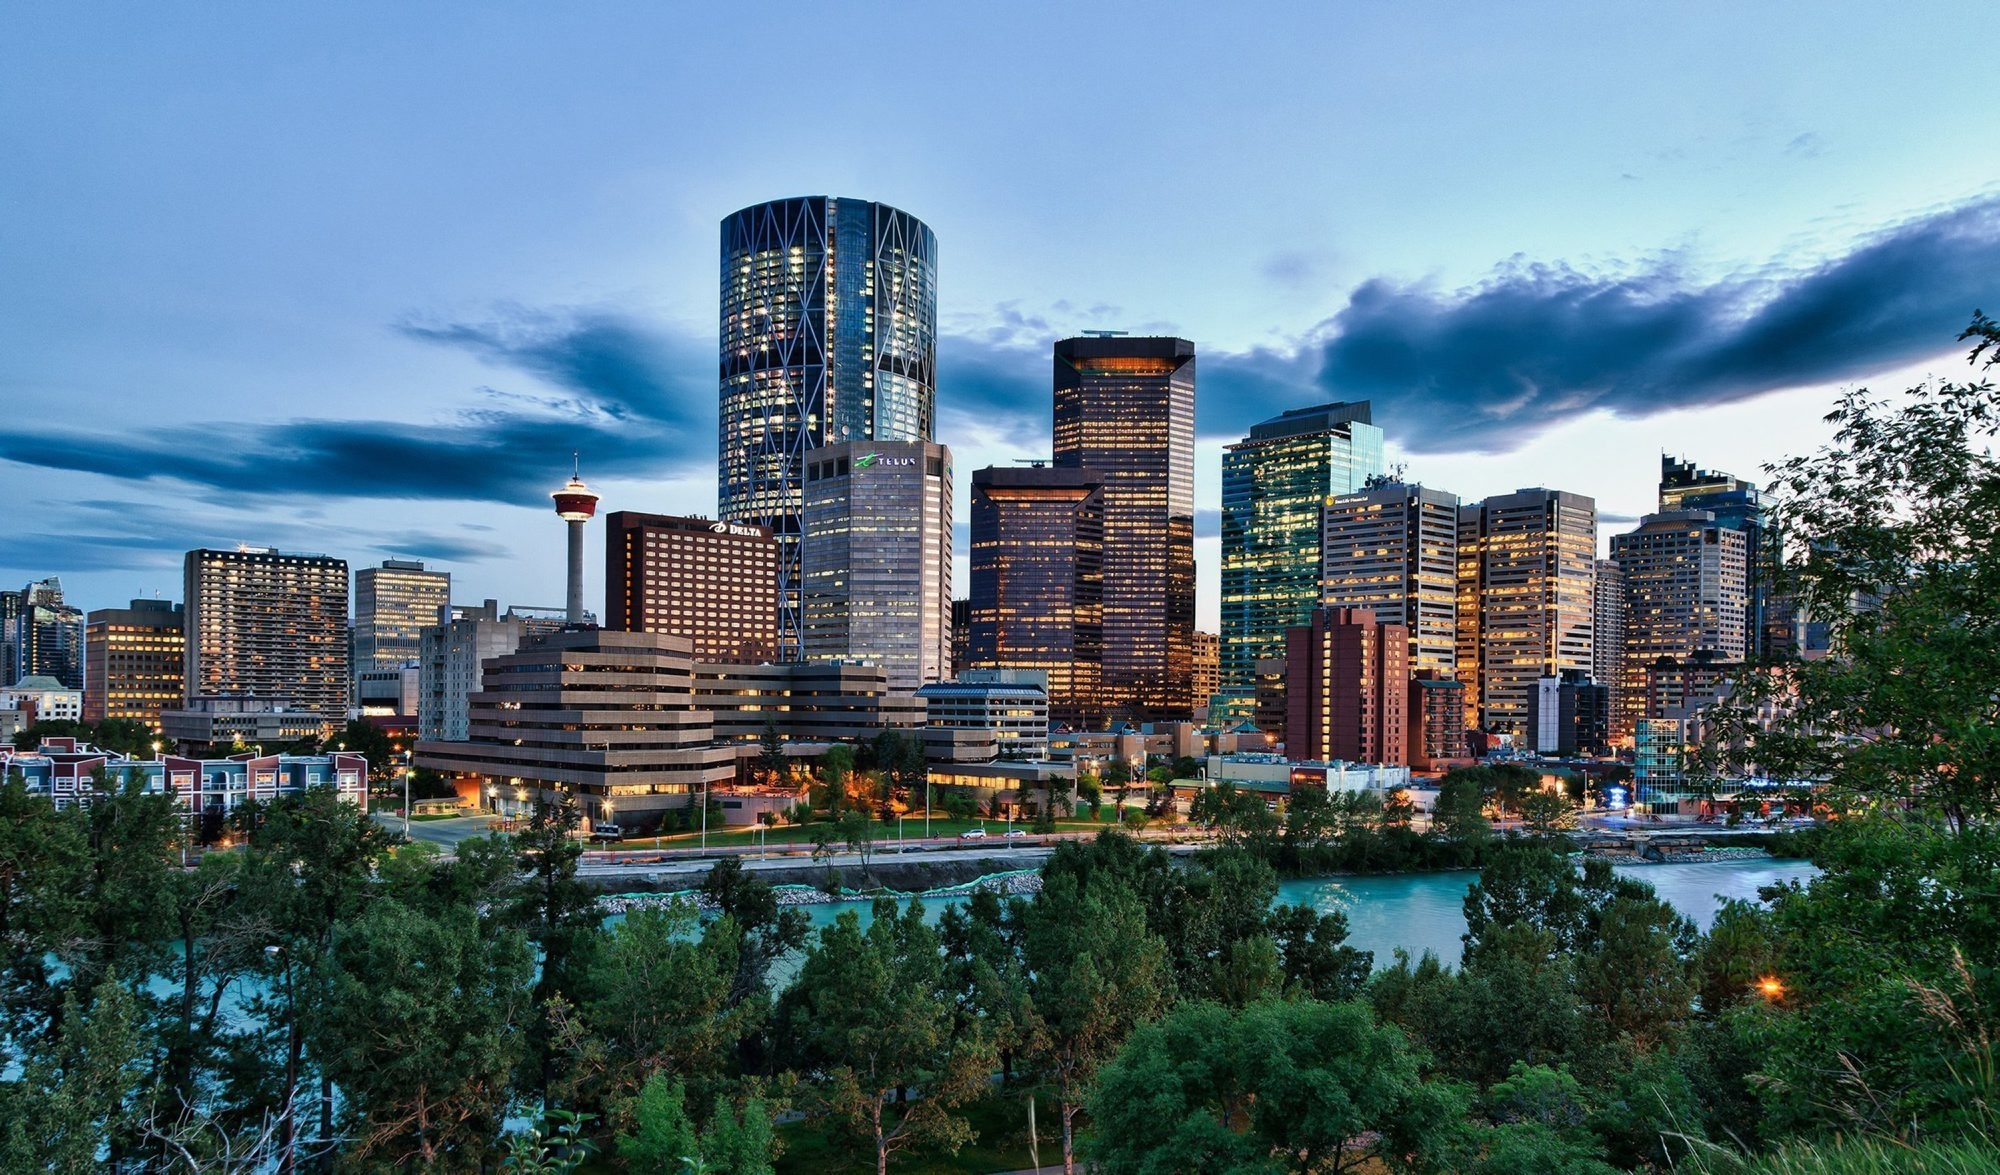 Bow Tower rises above the skyline of Calgary, Canada. (Tom Day/Chicago Tribune/MCT)